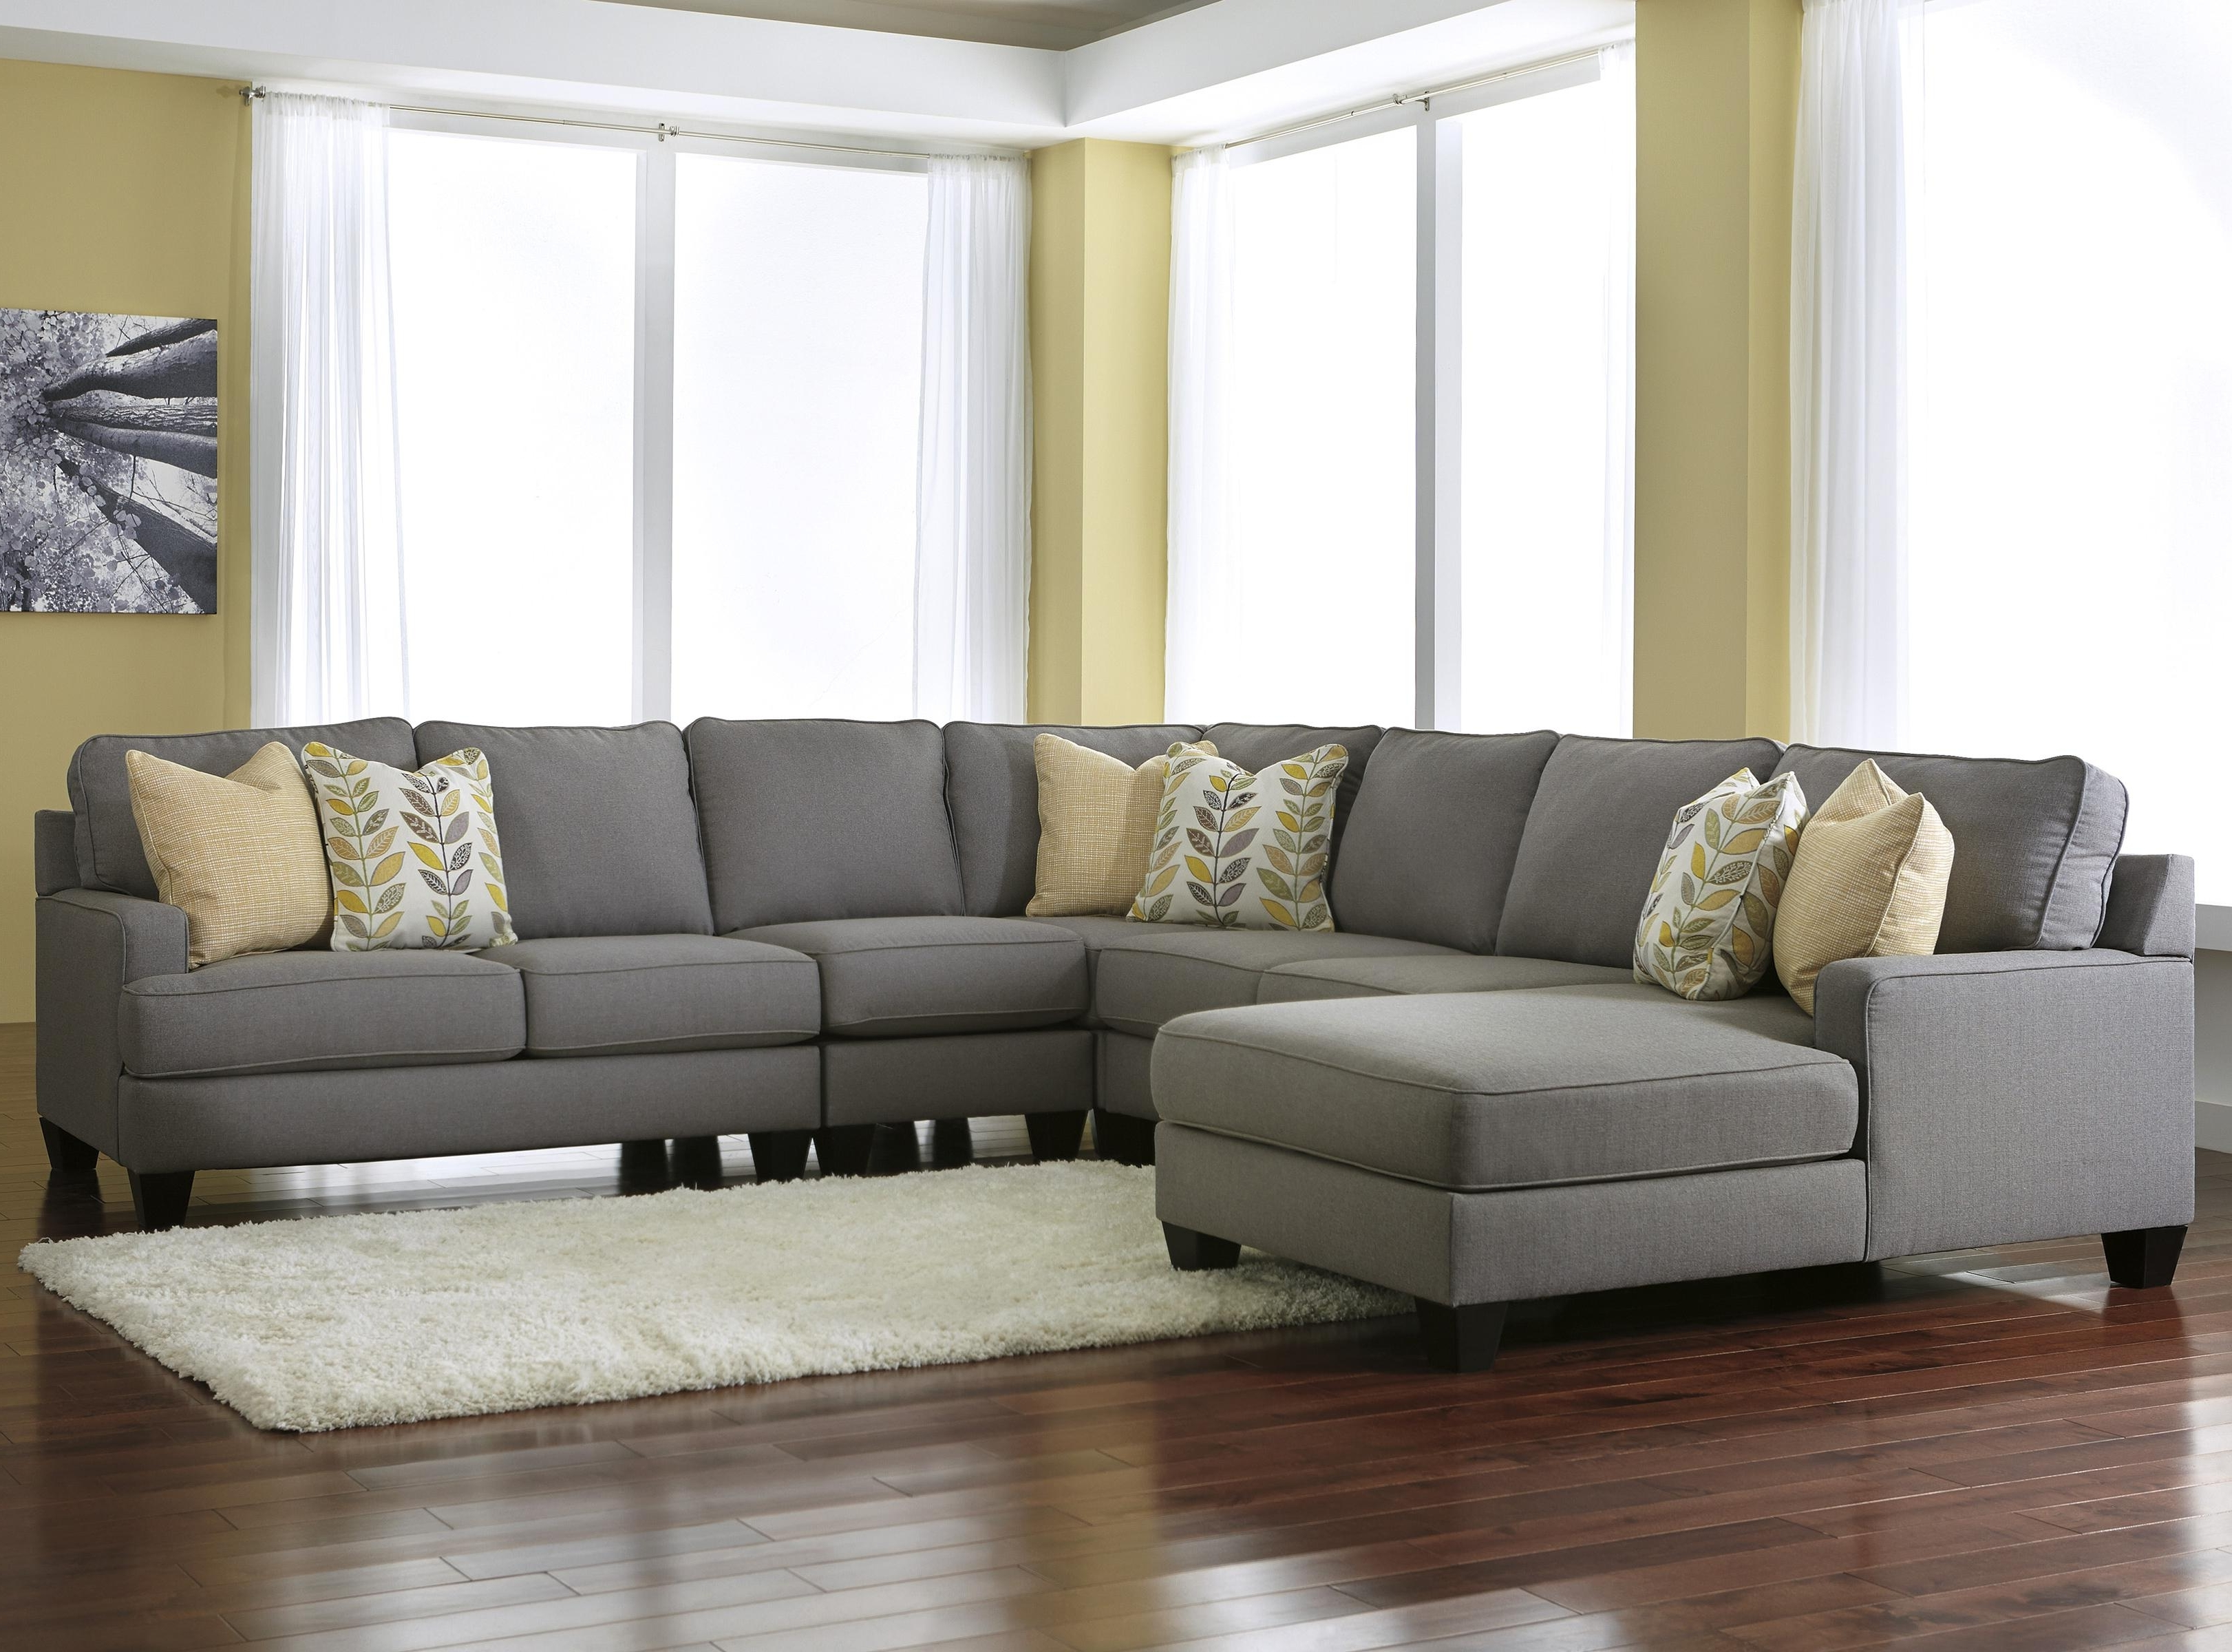 Harrisburg Pa Sectional Sofas For Recent Modern 5 Piece Sectional Sofa With Left Chaise & Reversible Seat (View 7 of 15)